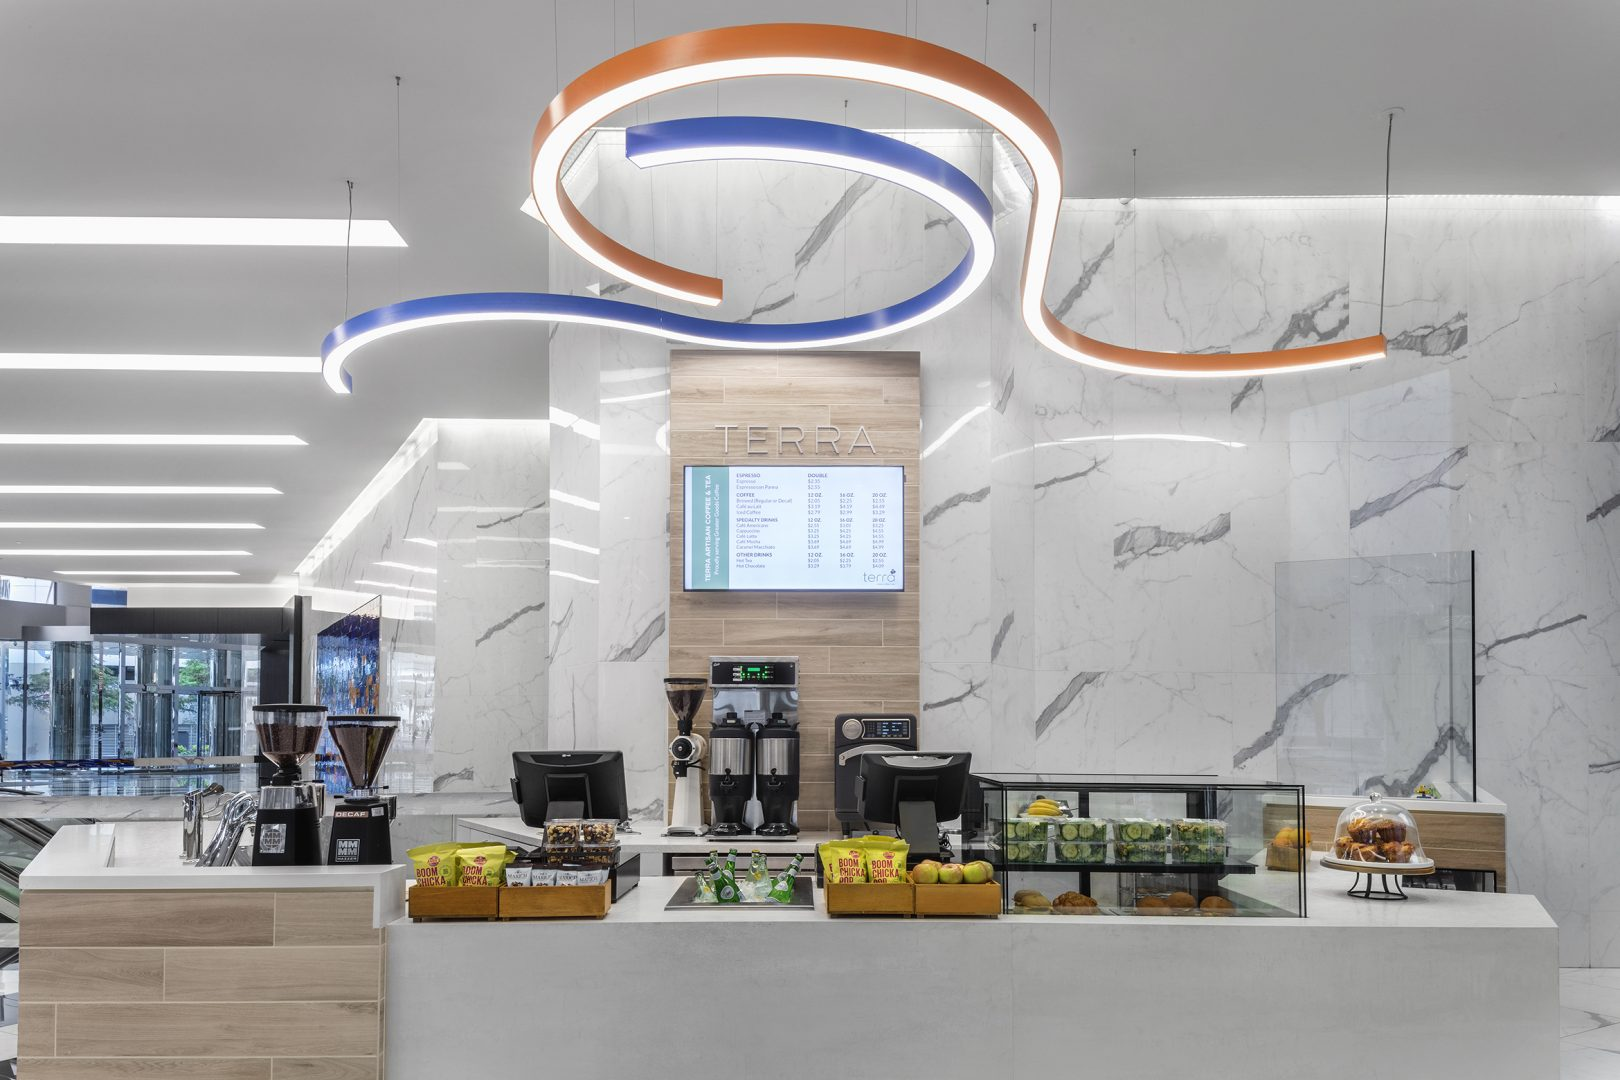 Restaurant Interior Design Coffee Shop Terra Coffee Houston Service Counter Curved Lighting